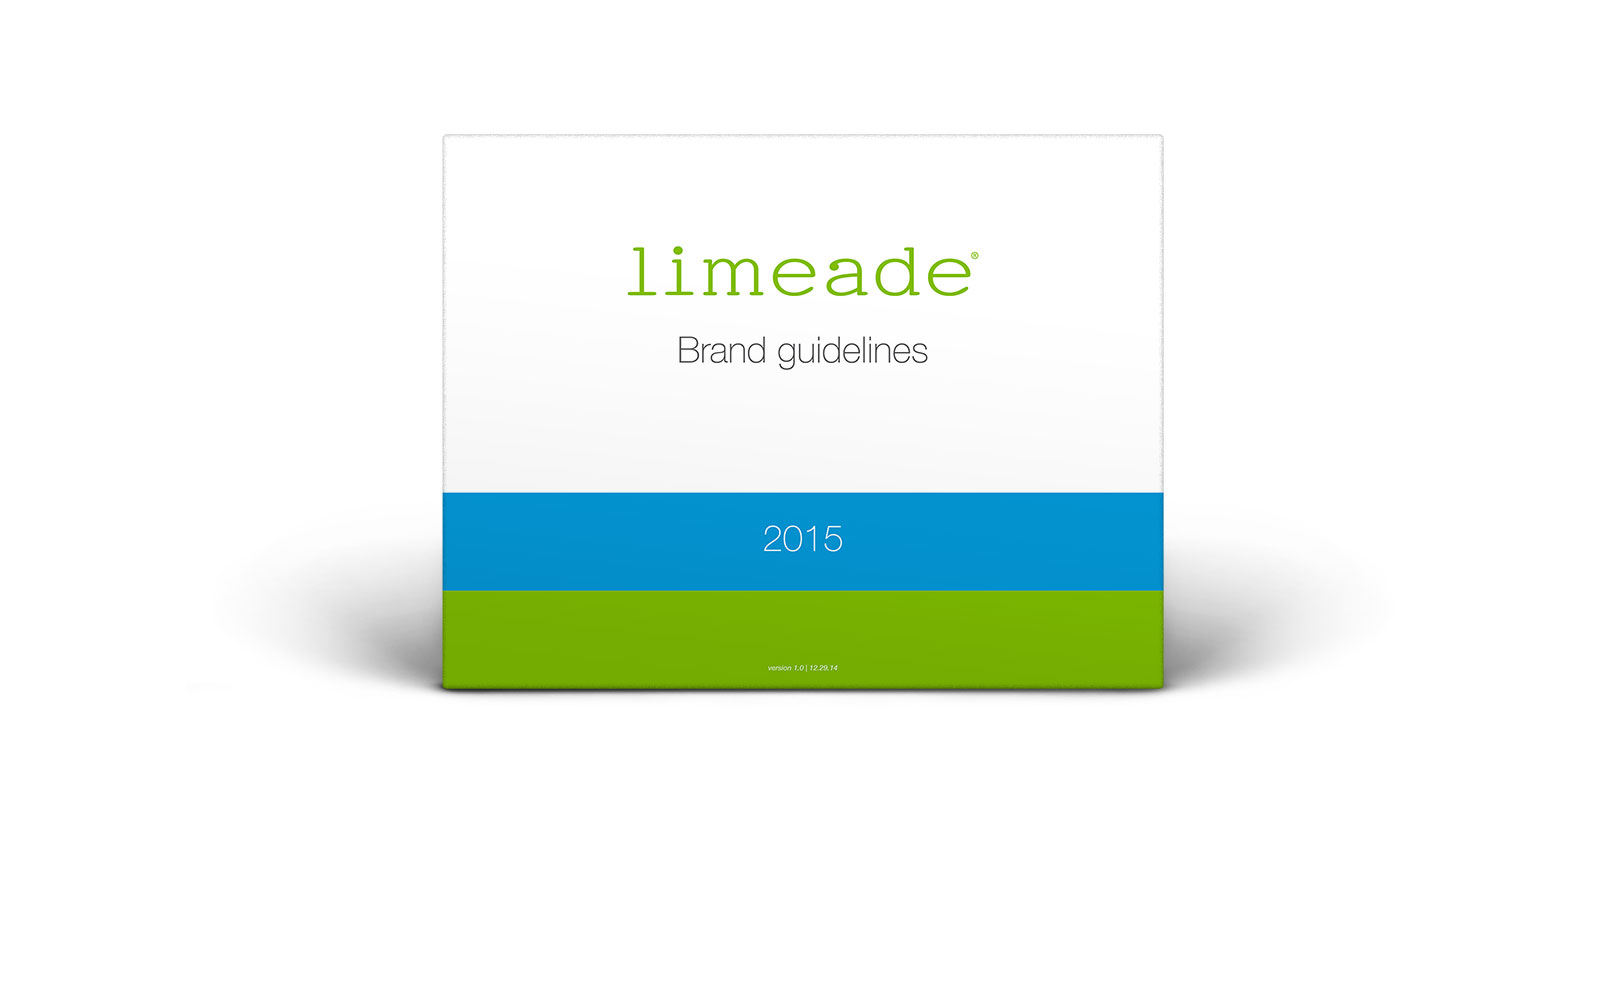 Limeade brand guidelines